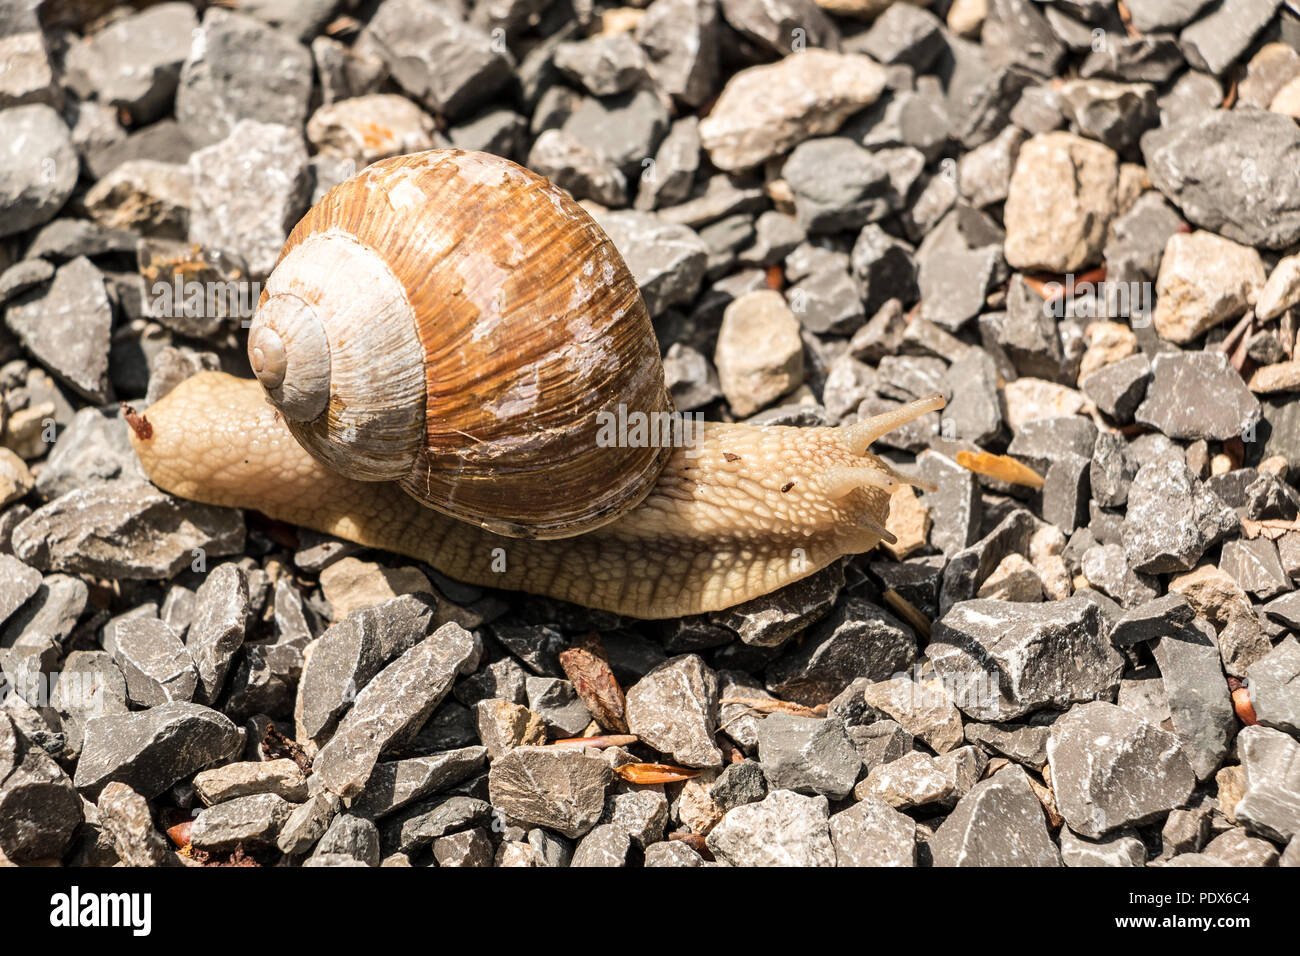 Big edible snail on stony ground in the forest Stock Photo